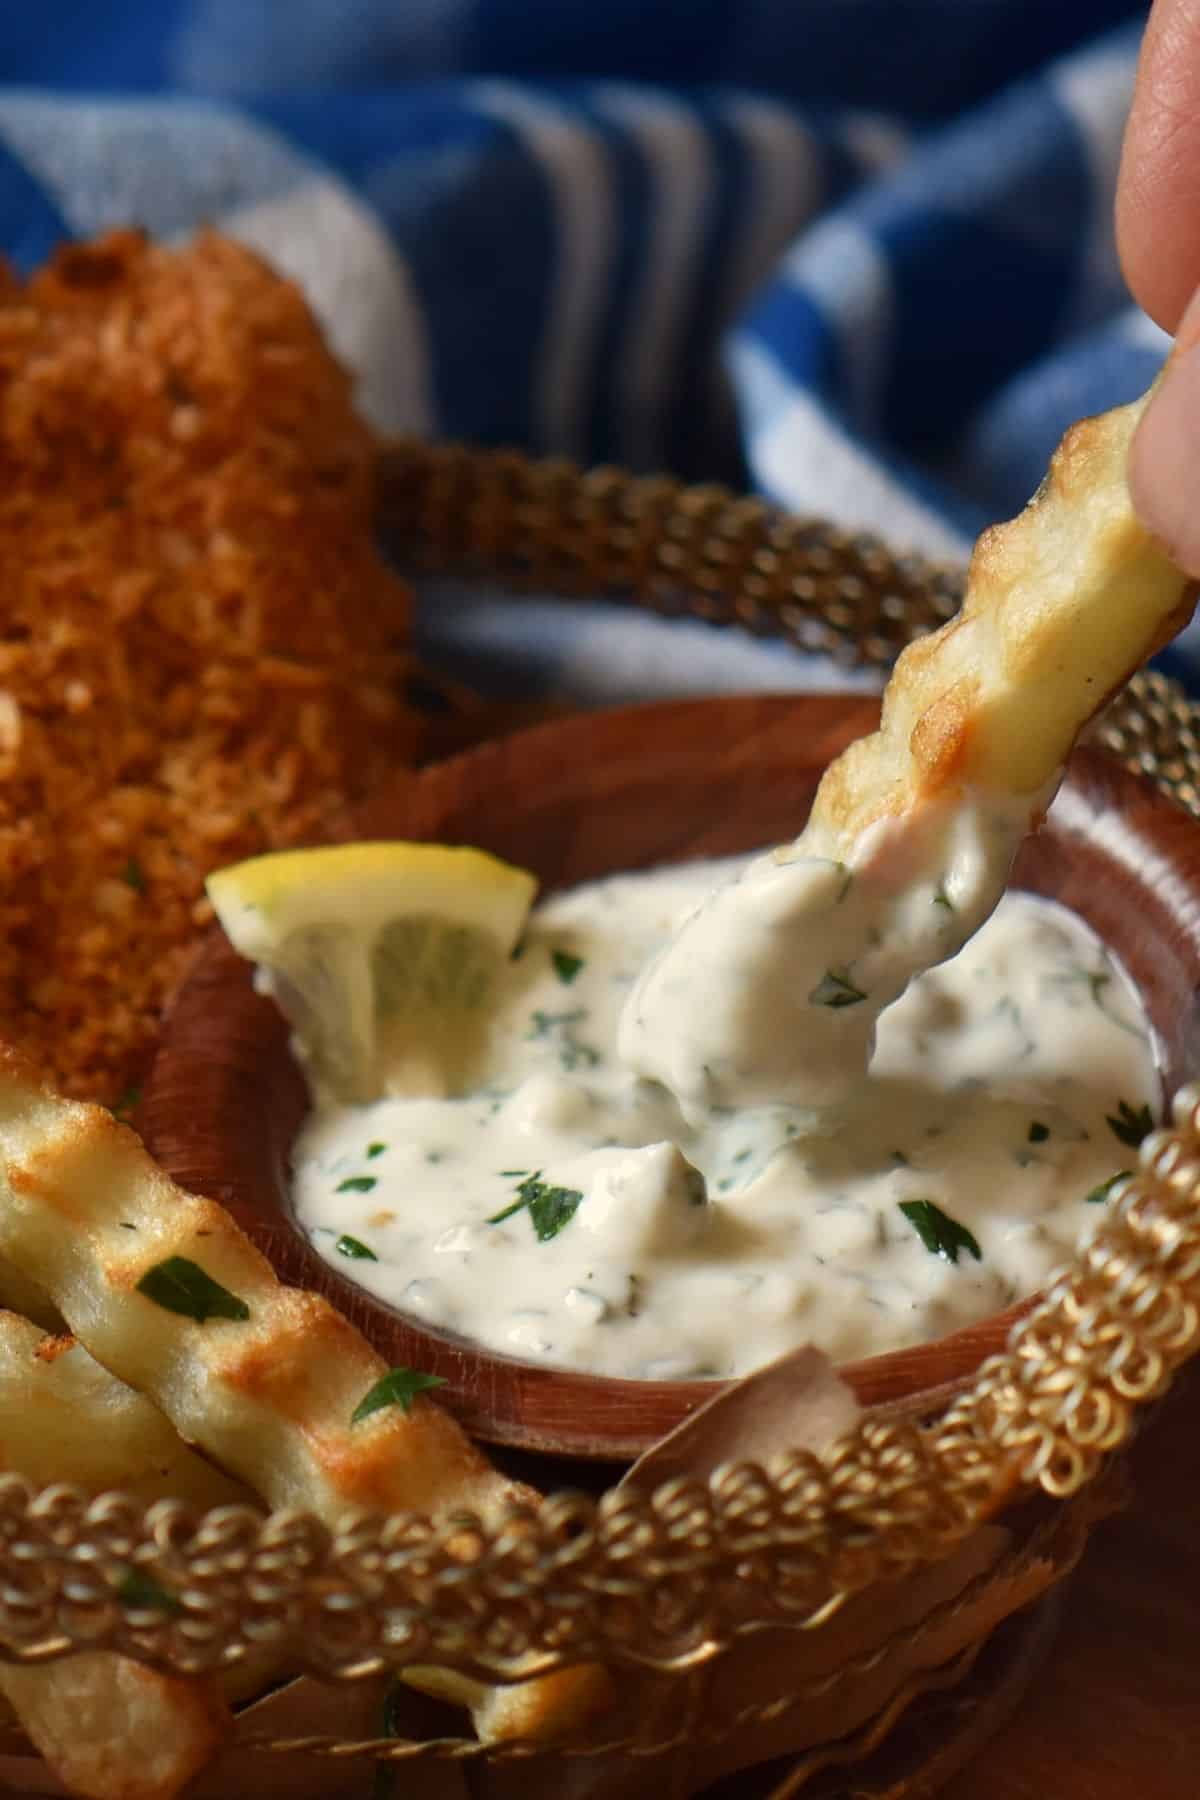 An air fryer crinkle fry dipped into a Greek yogurt sauce without mayo.